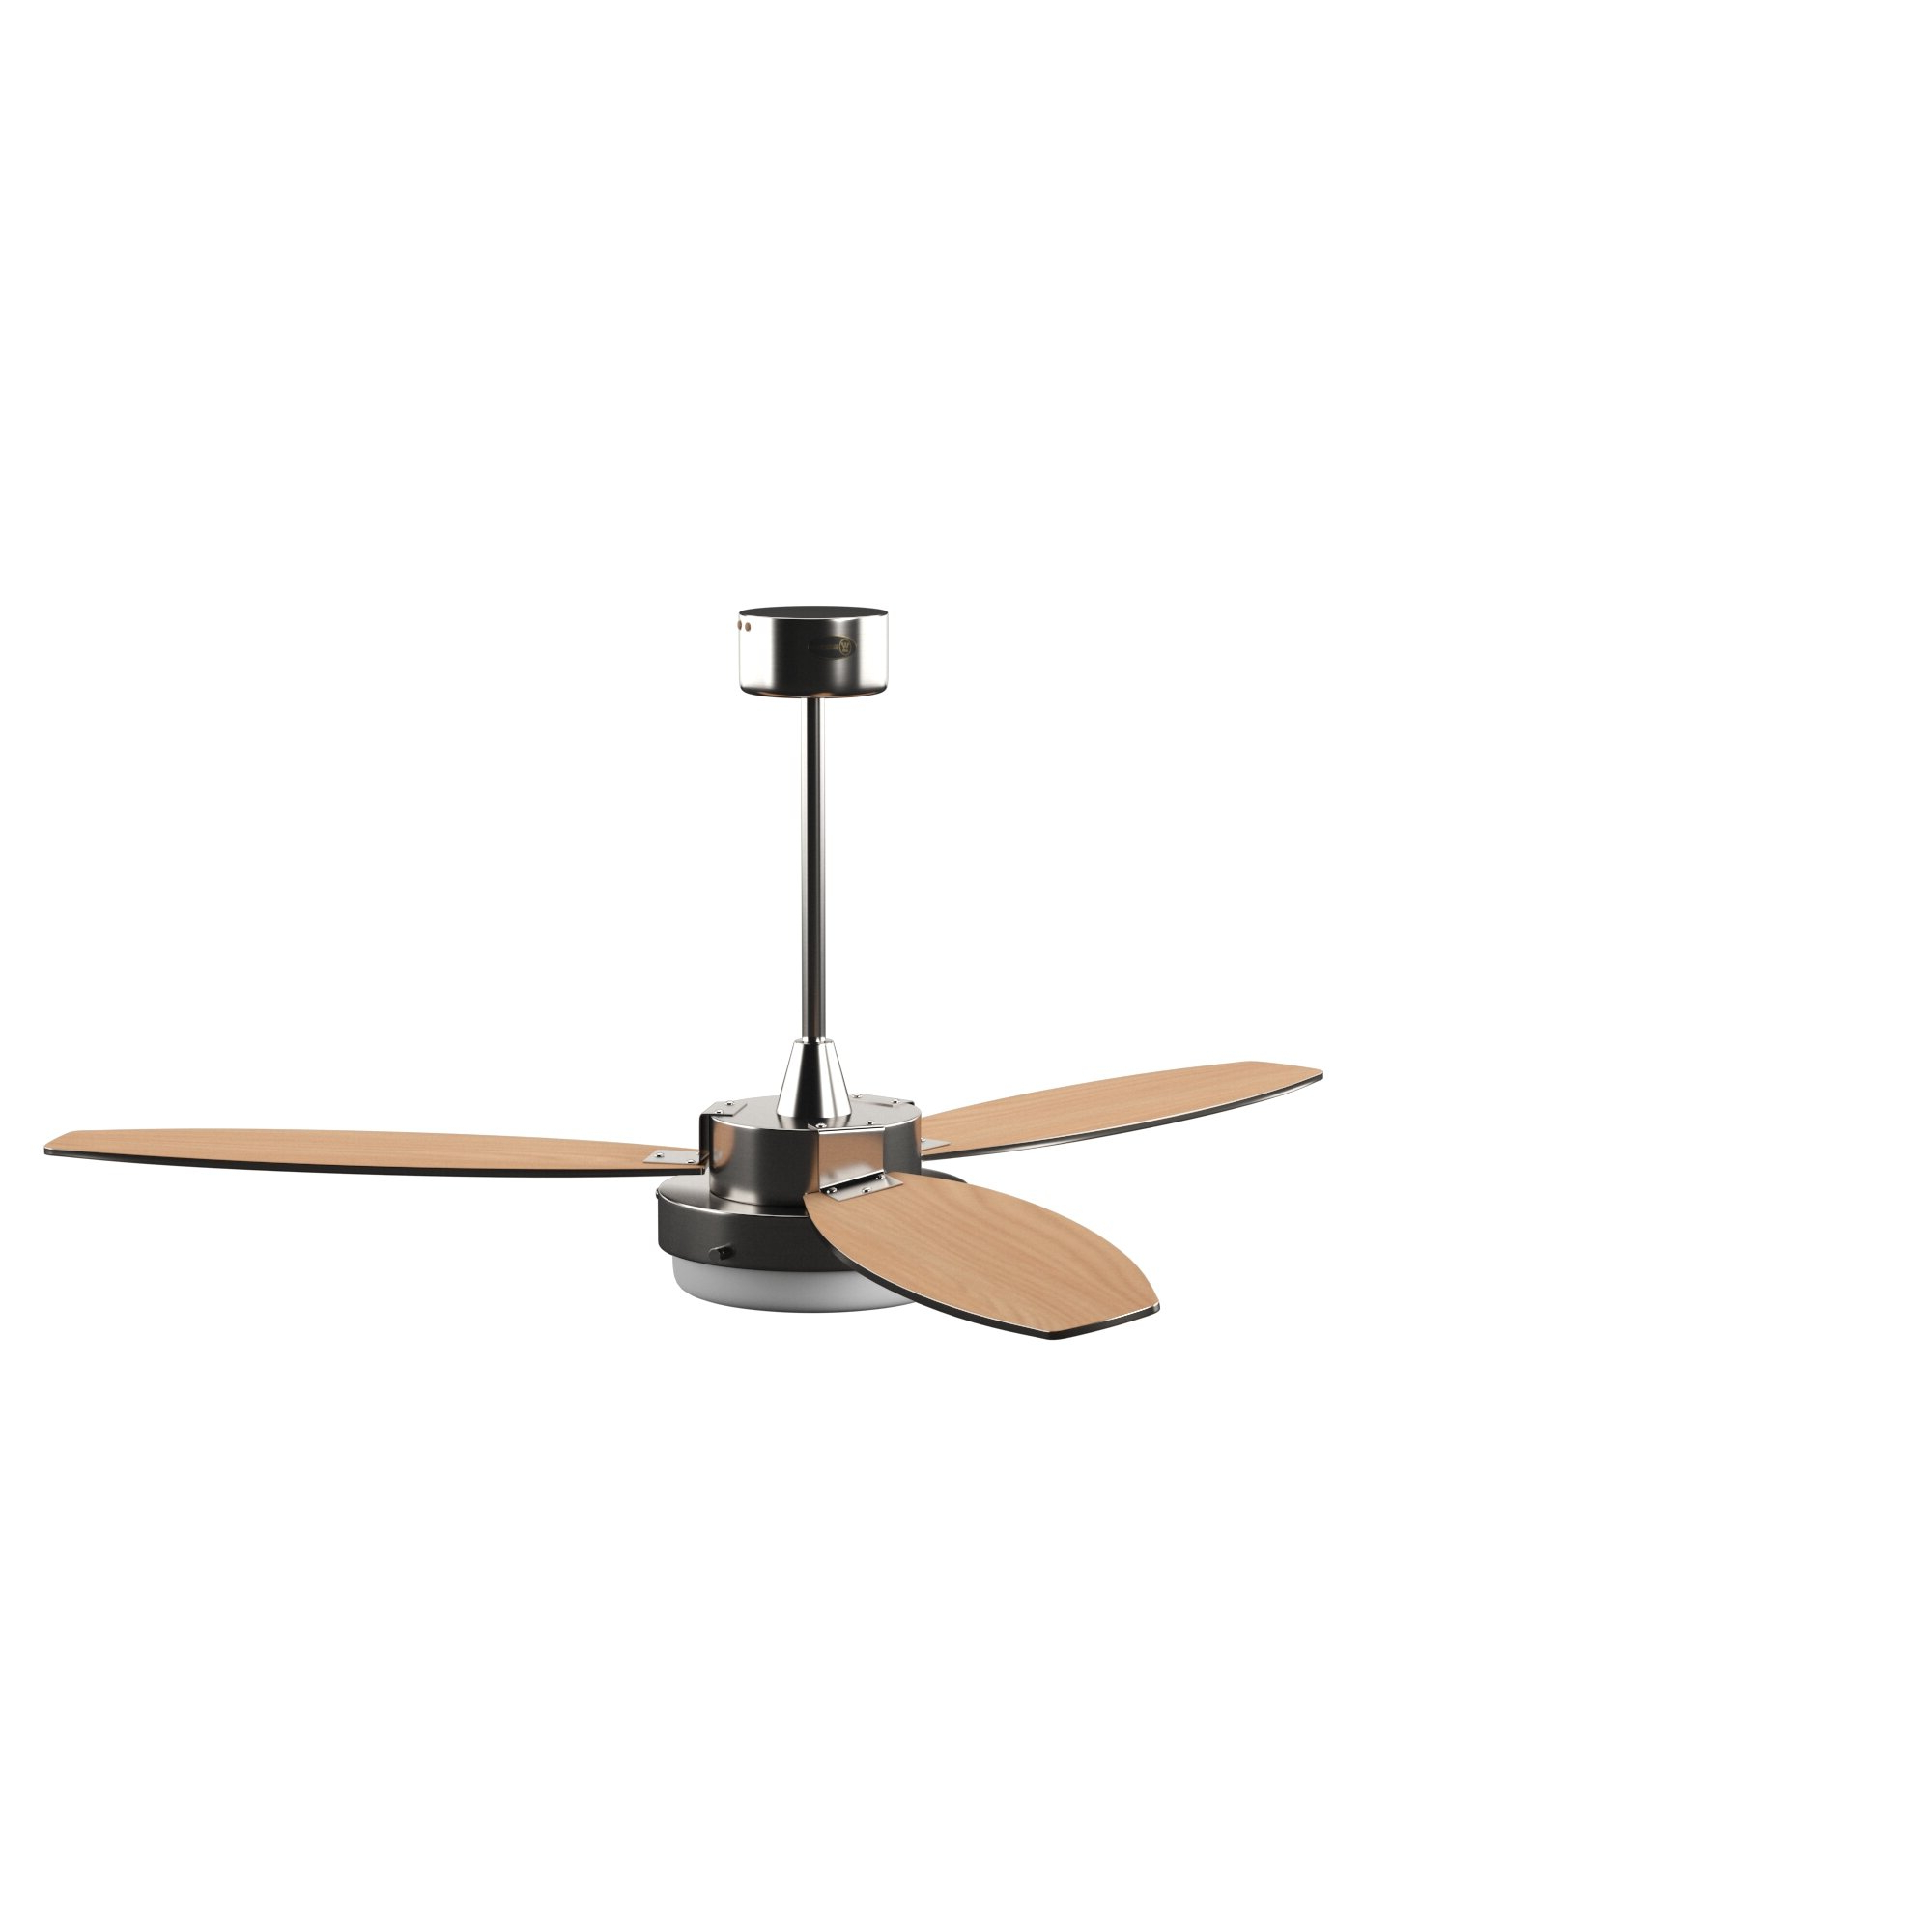 """Famous Corsa 3 Blade Ceiling Fans In 52"""" Corsa Two Light Reversible Plywood 3 Blade Ceiling Fan, Light Kit Included (View 2 of 20)"""